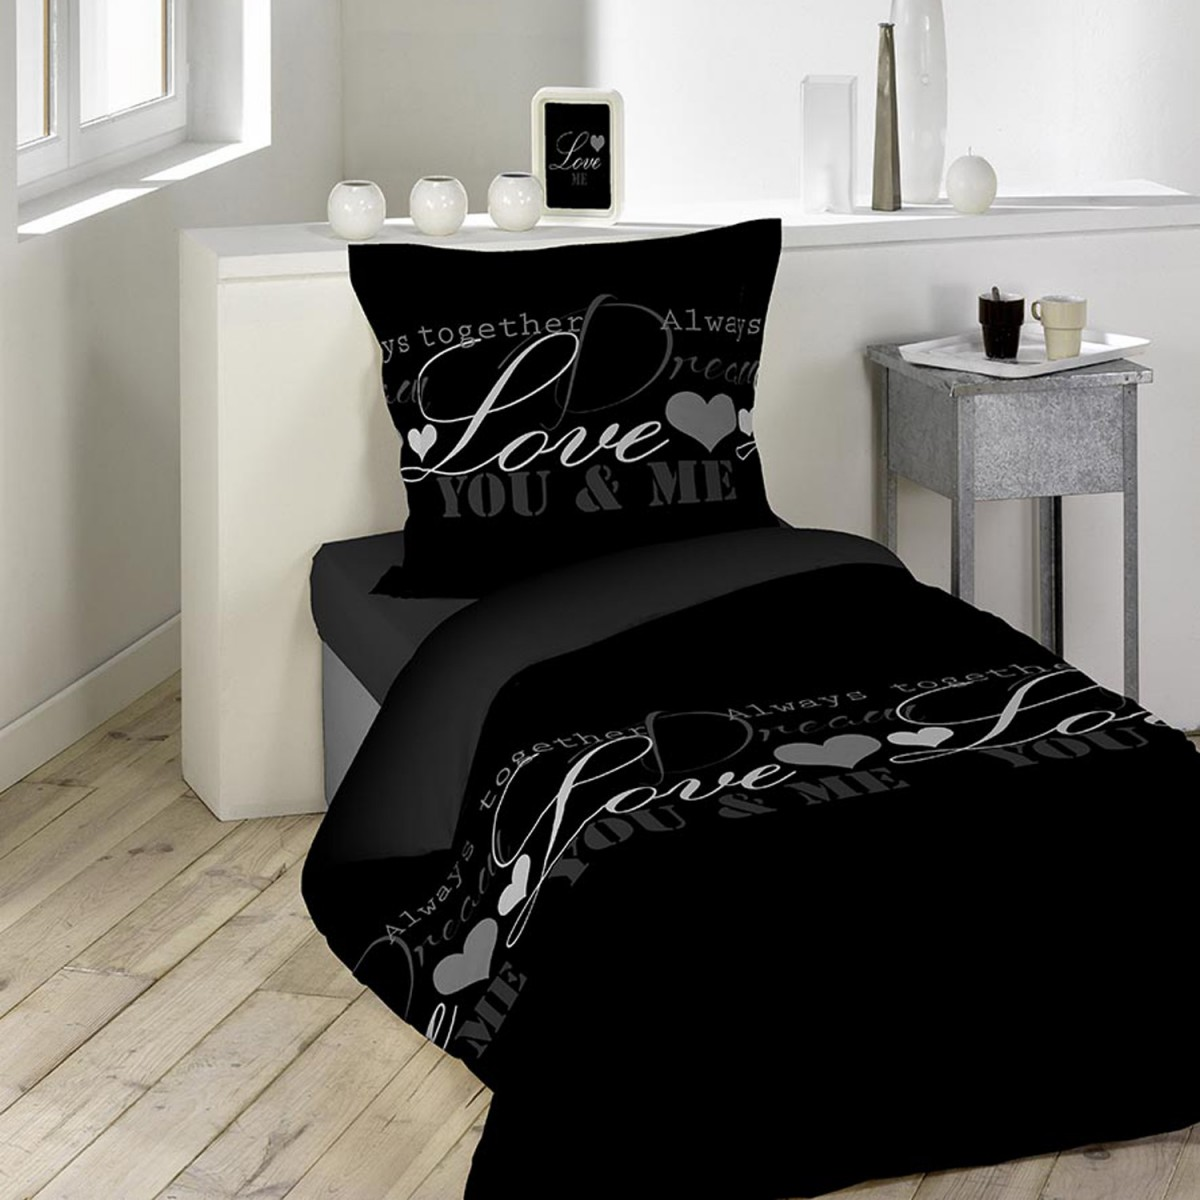 housse de couette love dreams 140x200 cm les douces nuits de ma linge de maison. Black Bedroom Furniture Sets. Home Design Ideas